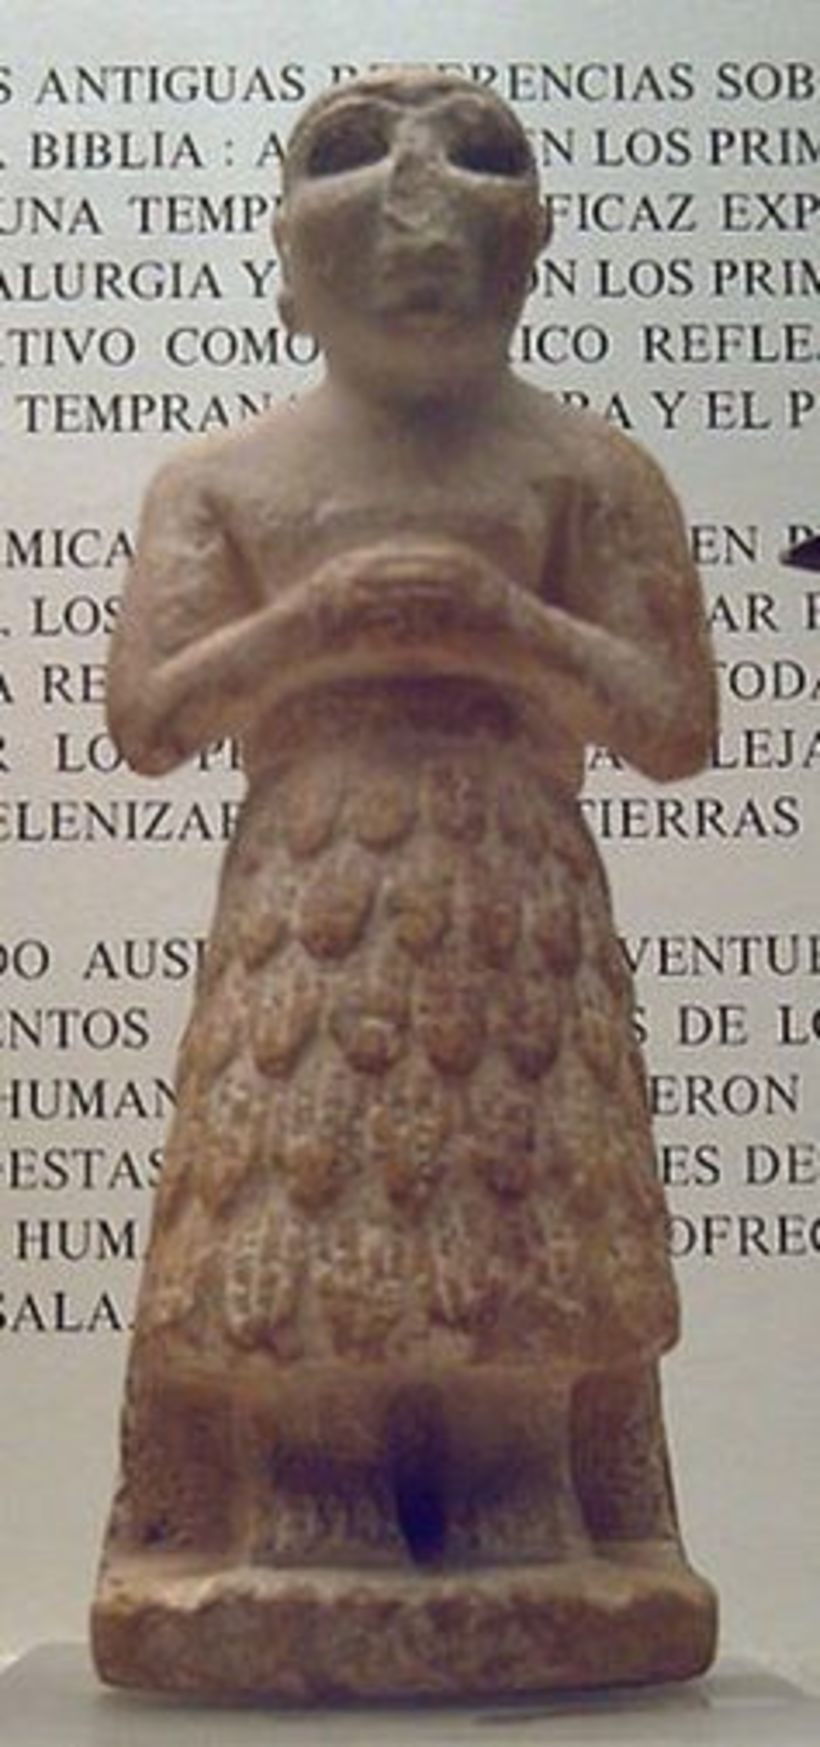 Zuism is based on the worship of the ancient Sumeran ...